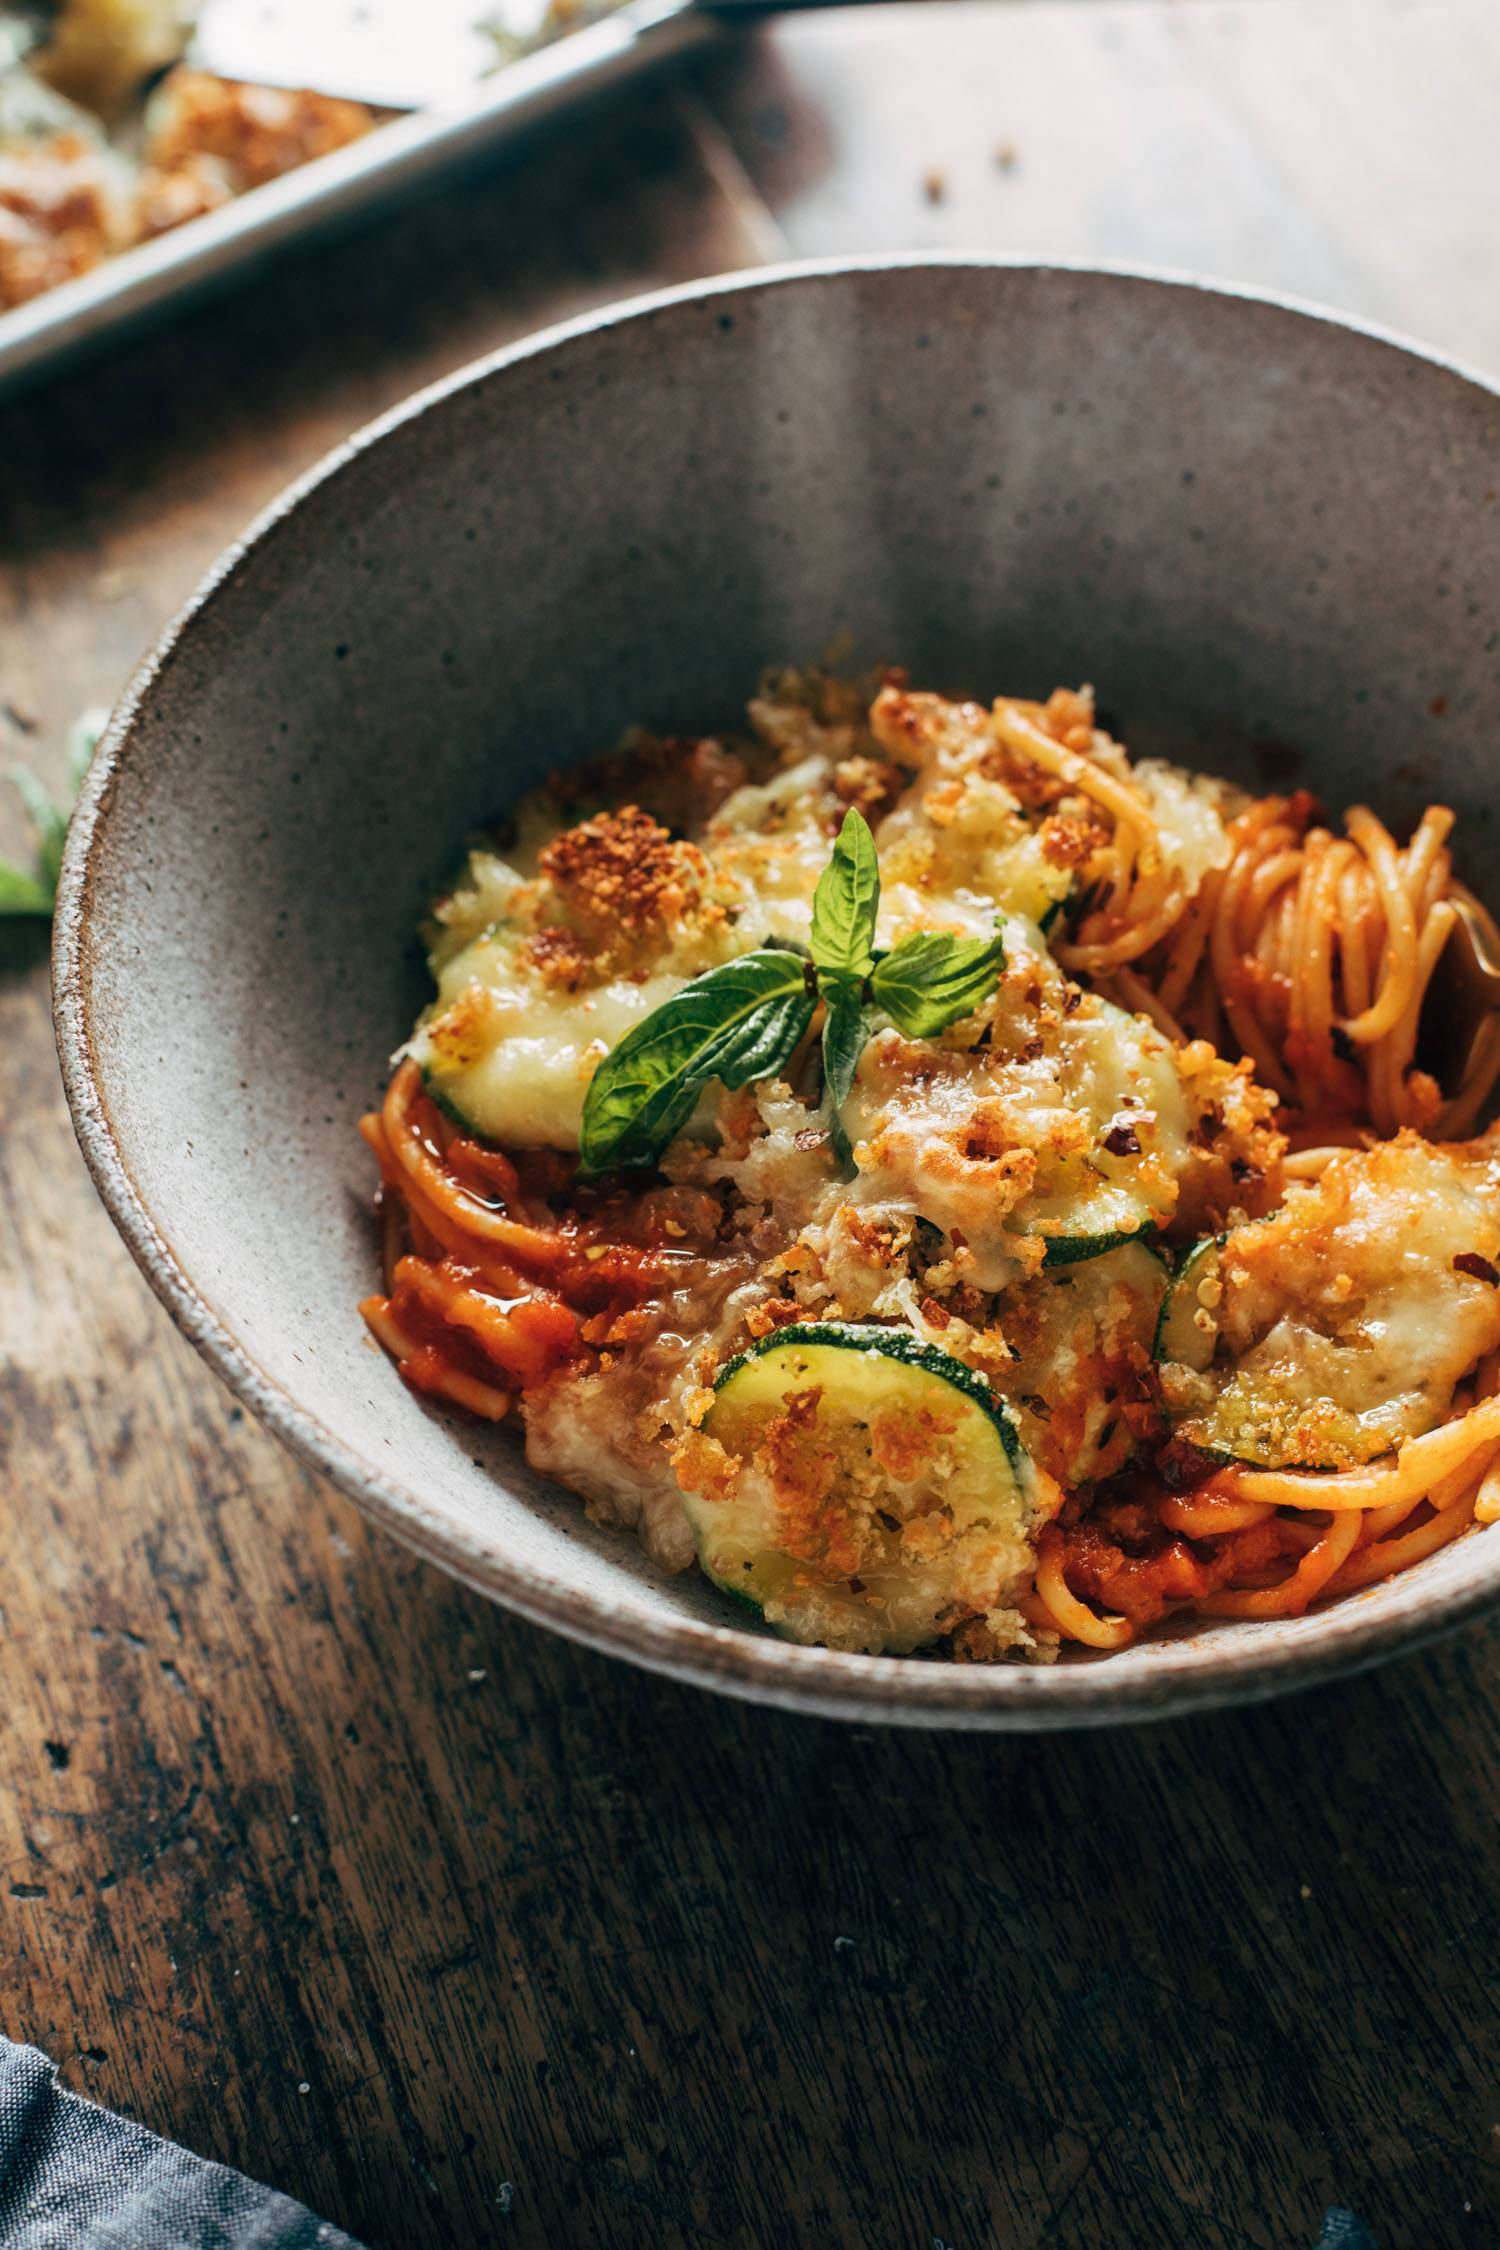 Spaghetti with crispy zucchini in a bowl with melted cheese and fresh basil on top.